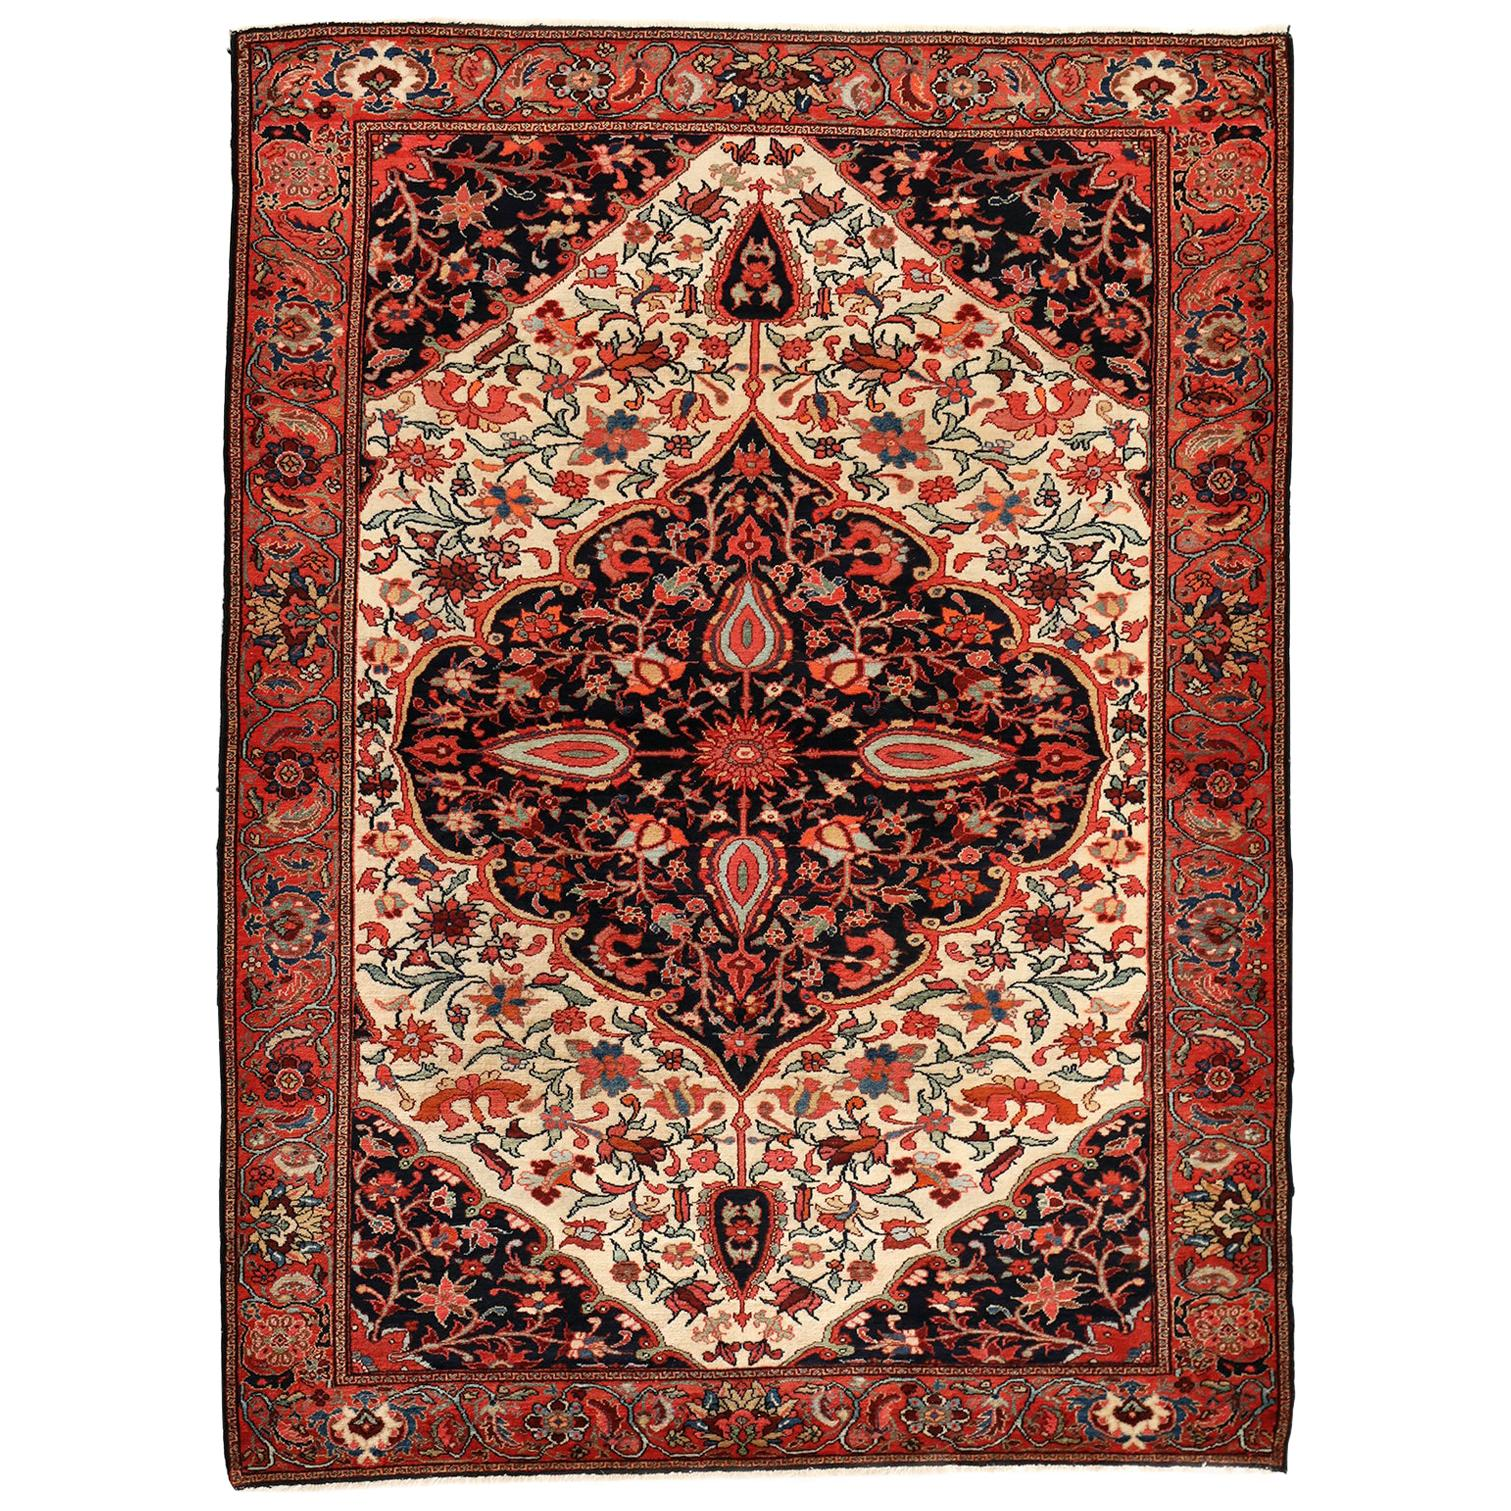 Persian Meeshan Malayer Carpet circa 1900 in Pure Wool and Vegetable Dyes